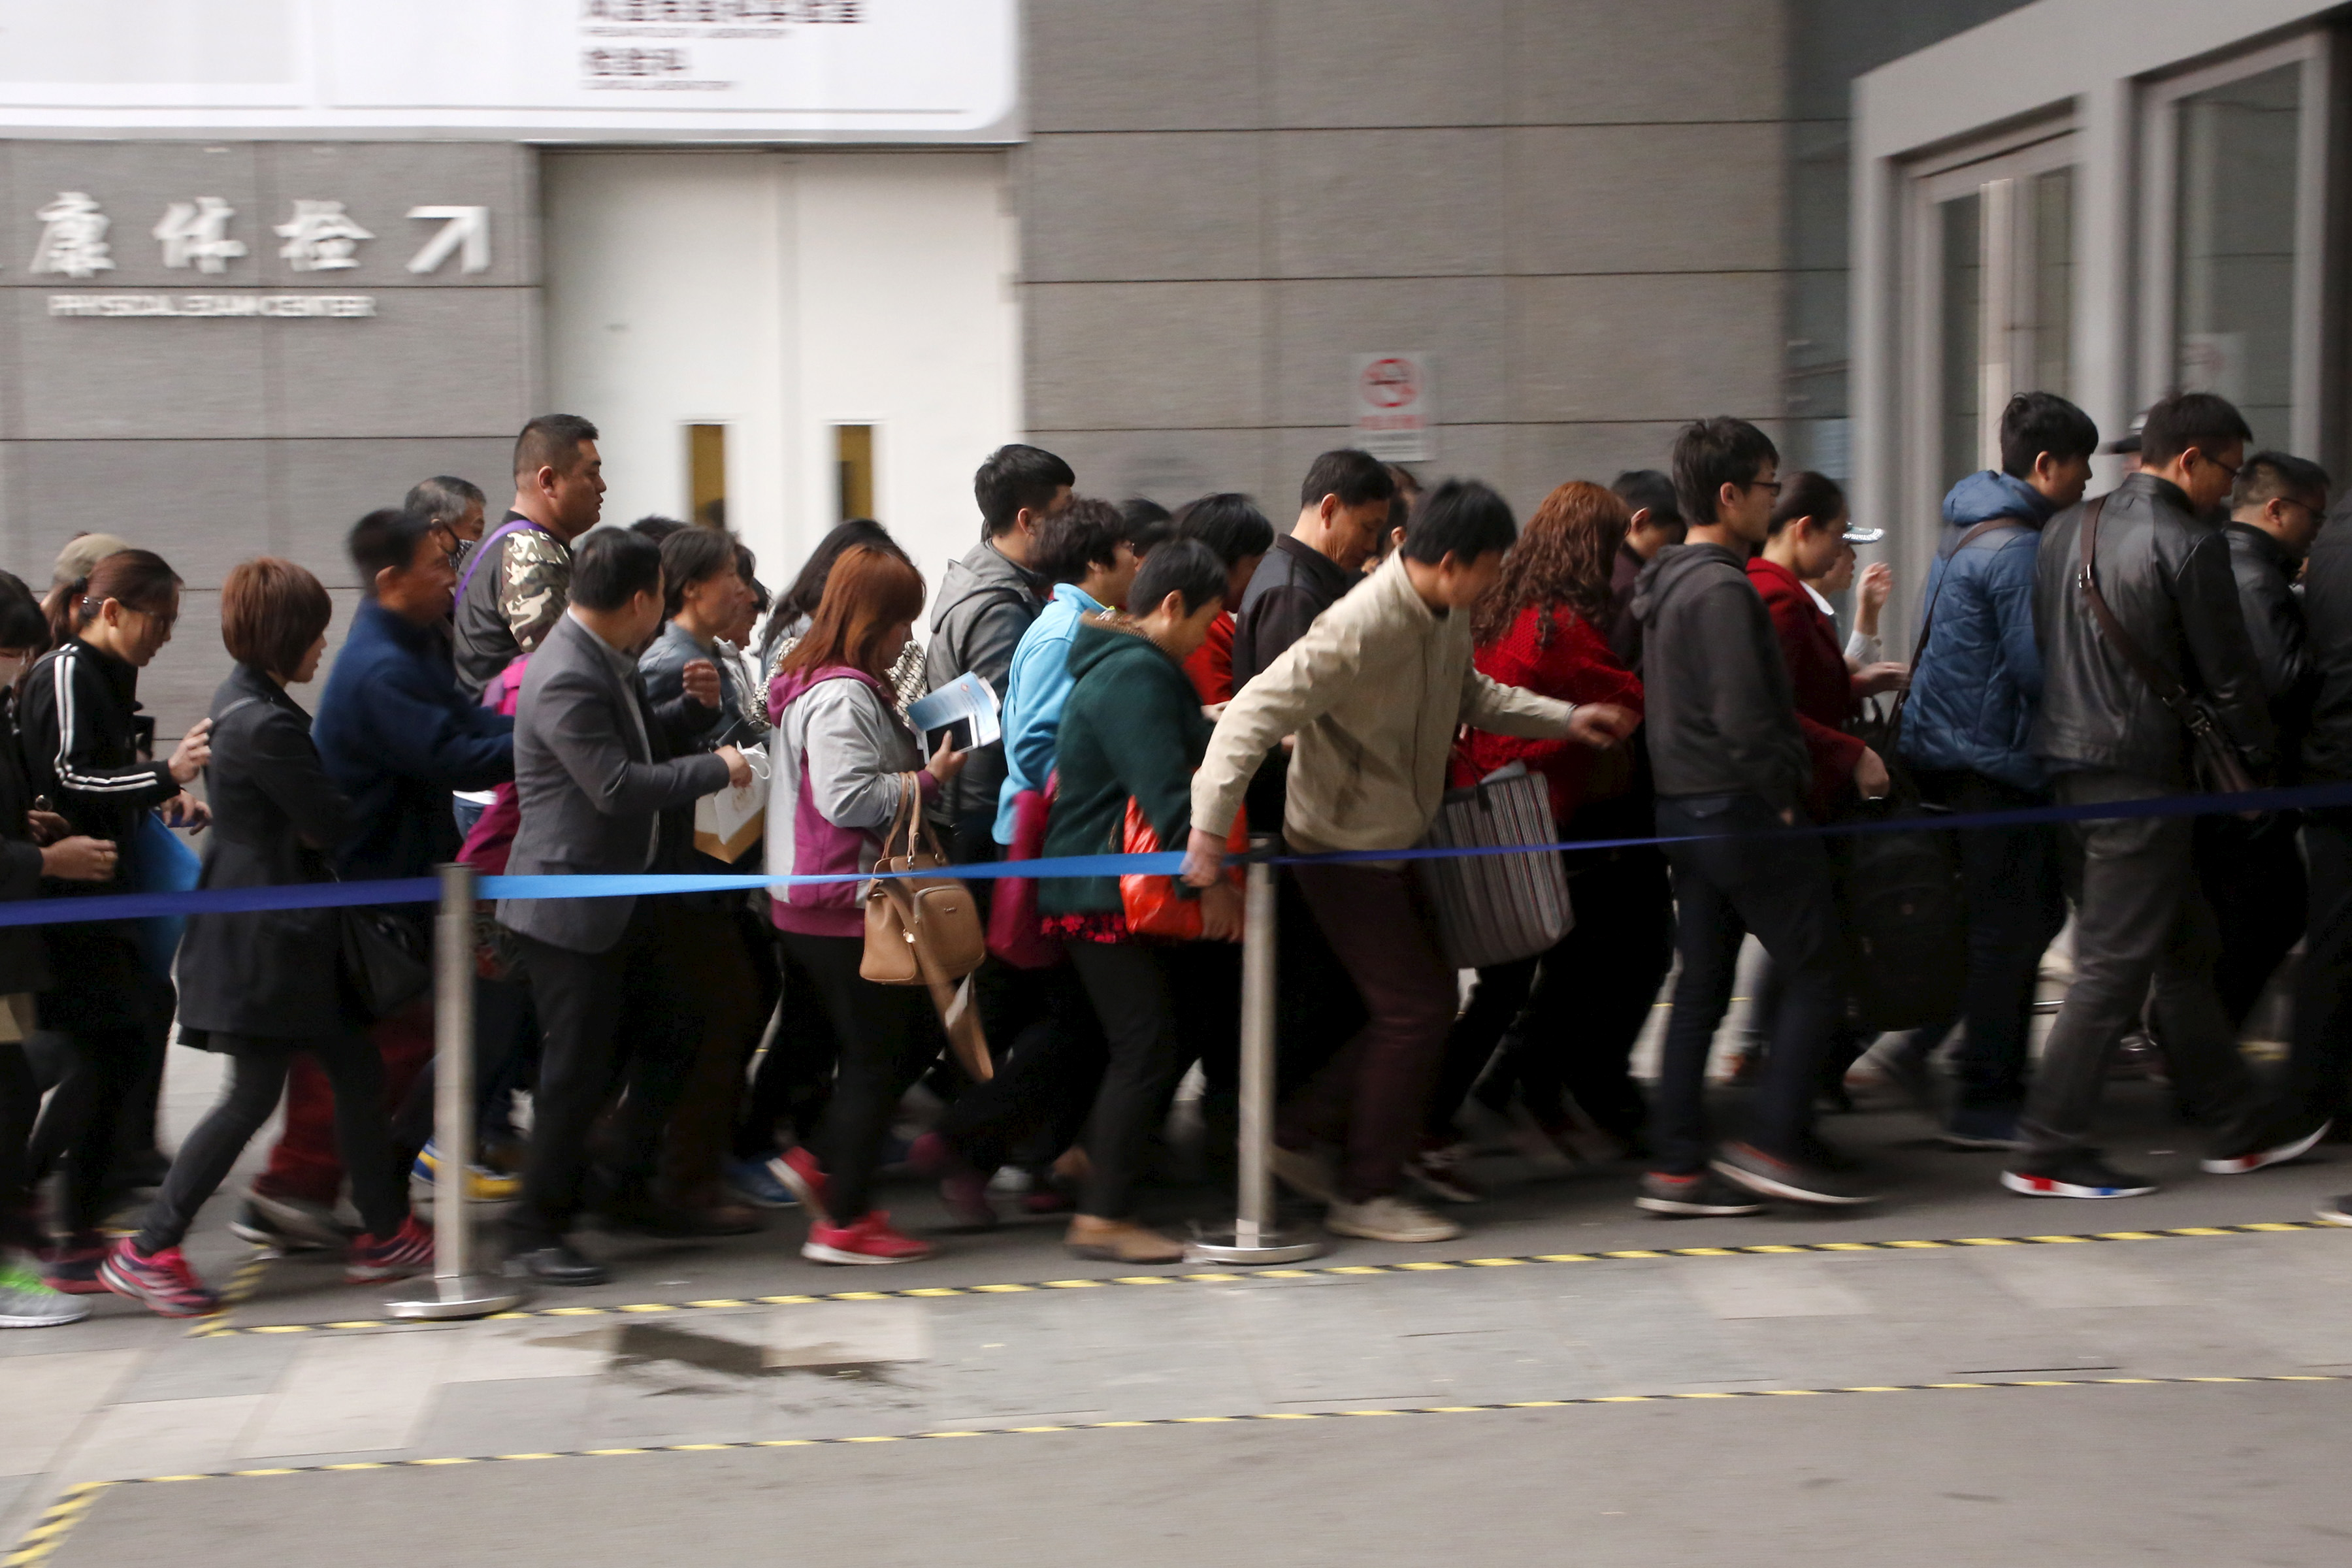 People rush into Peking Union Hospital early in the morning, in Beijing, China, April 6, 2016. Picture taken April 6, 2016.